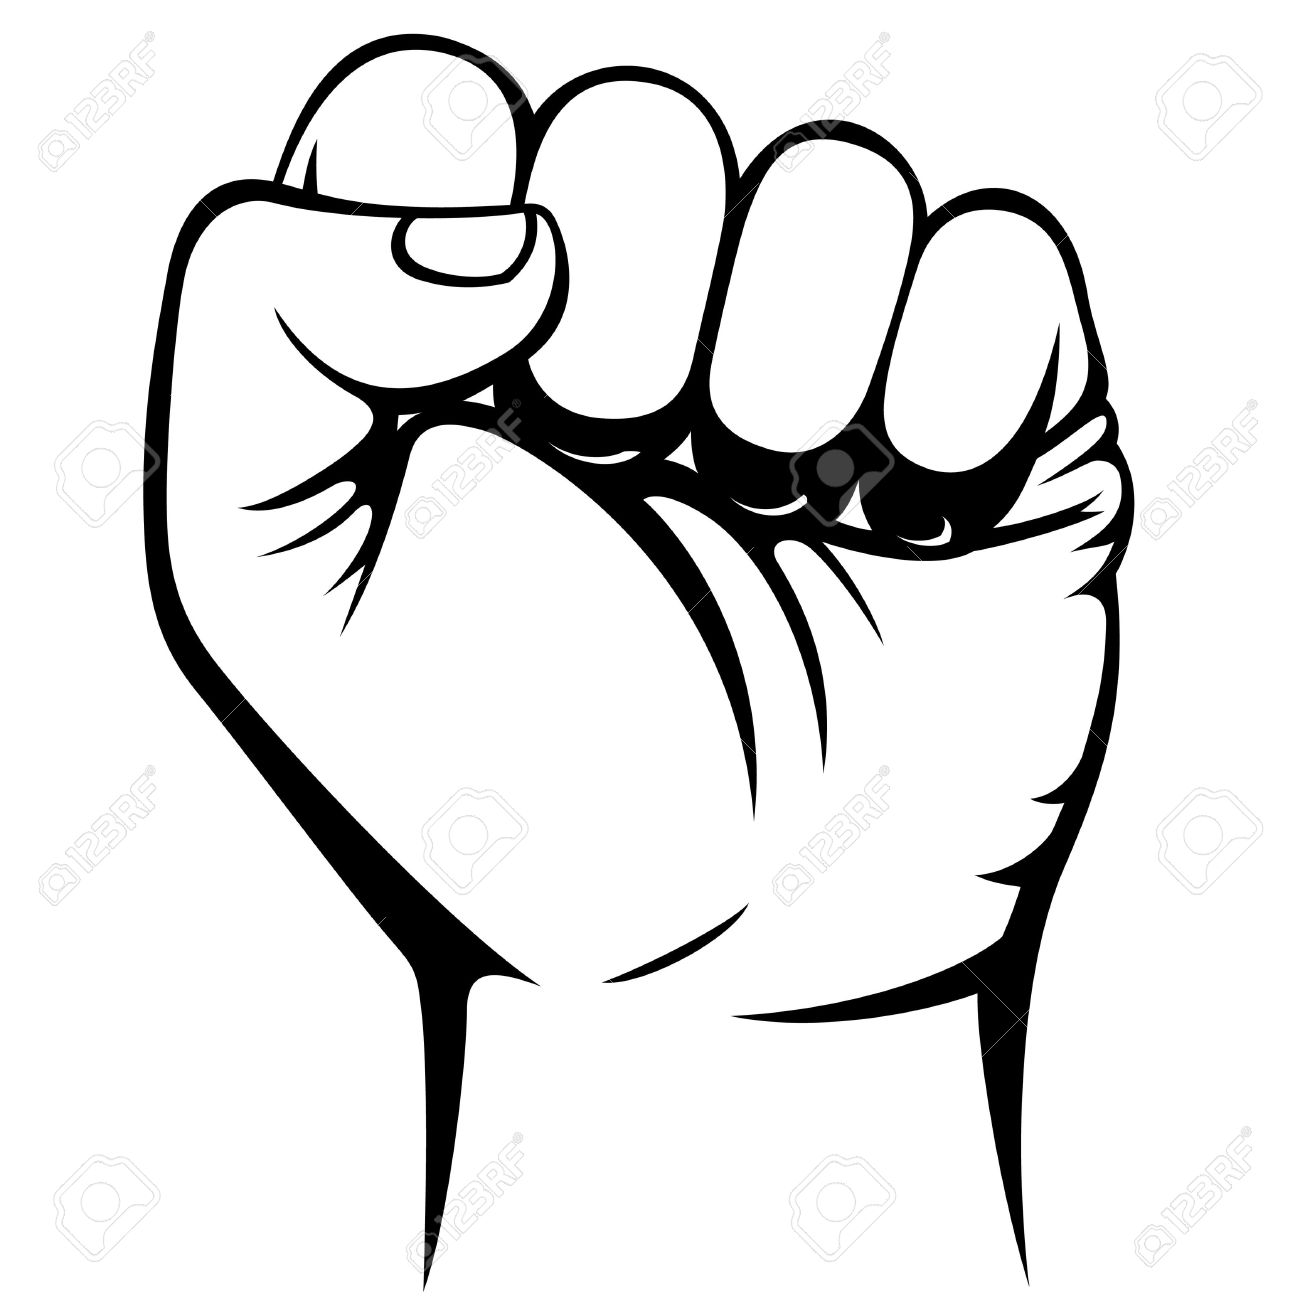 Free download best on. Fist clipart black and white